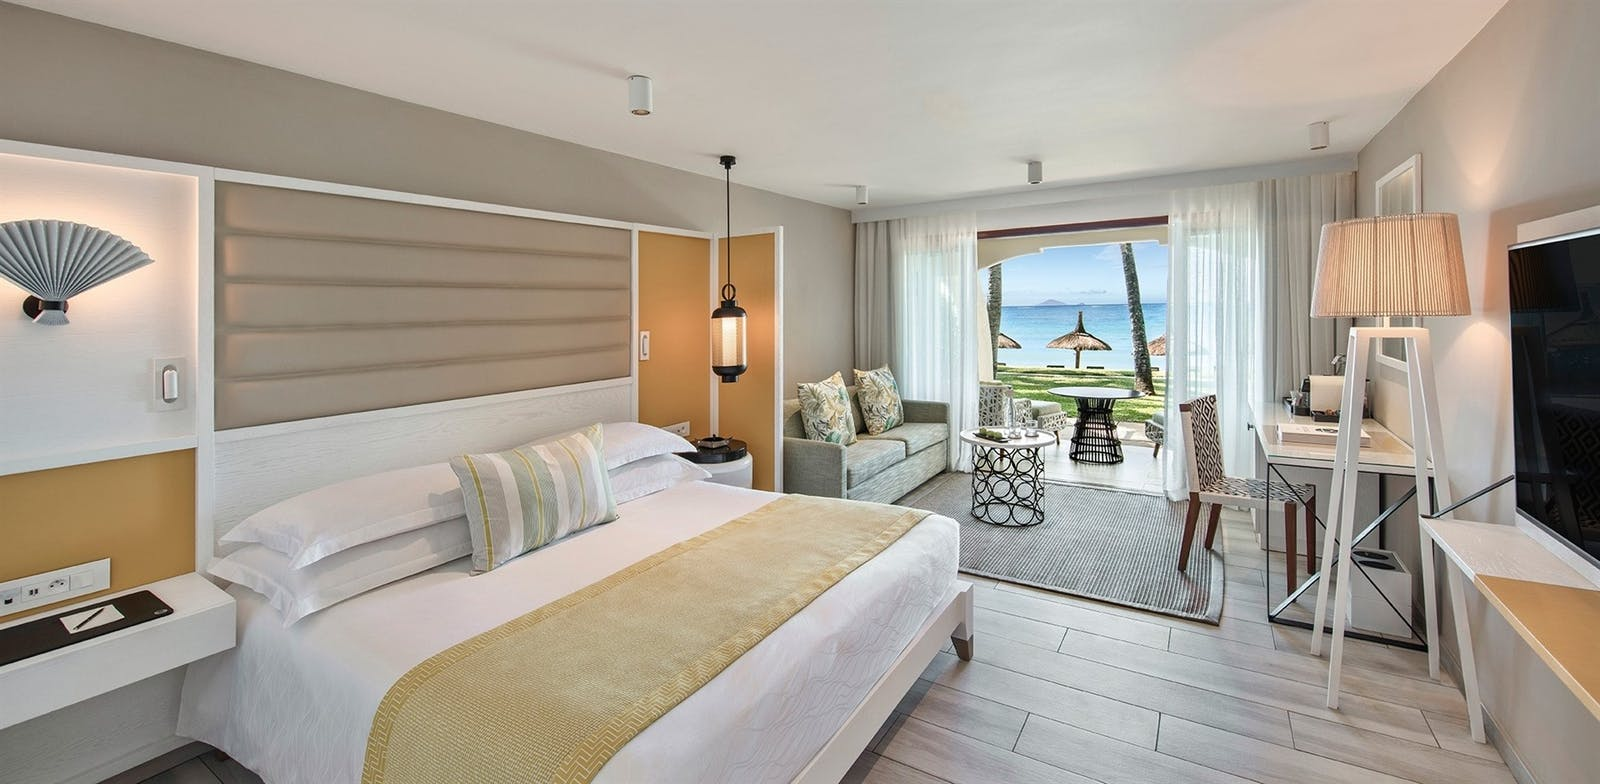 Prestige Room at Constance Belle Mare Plage, Mauritius